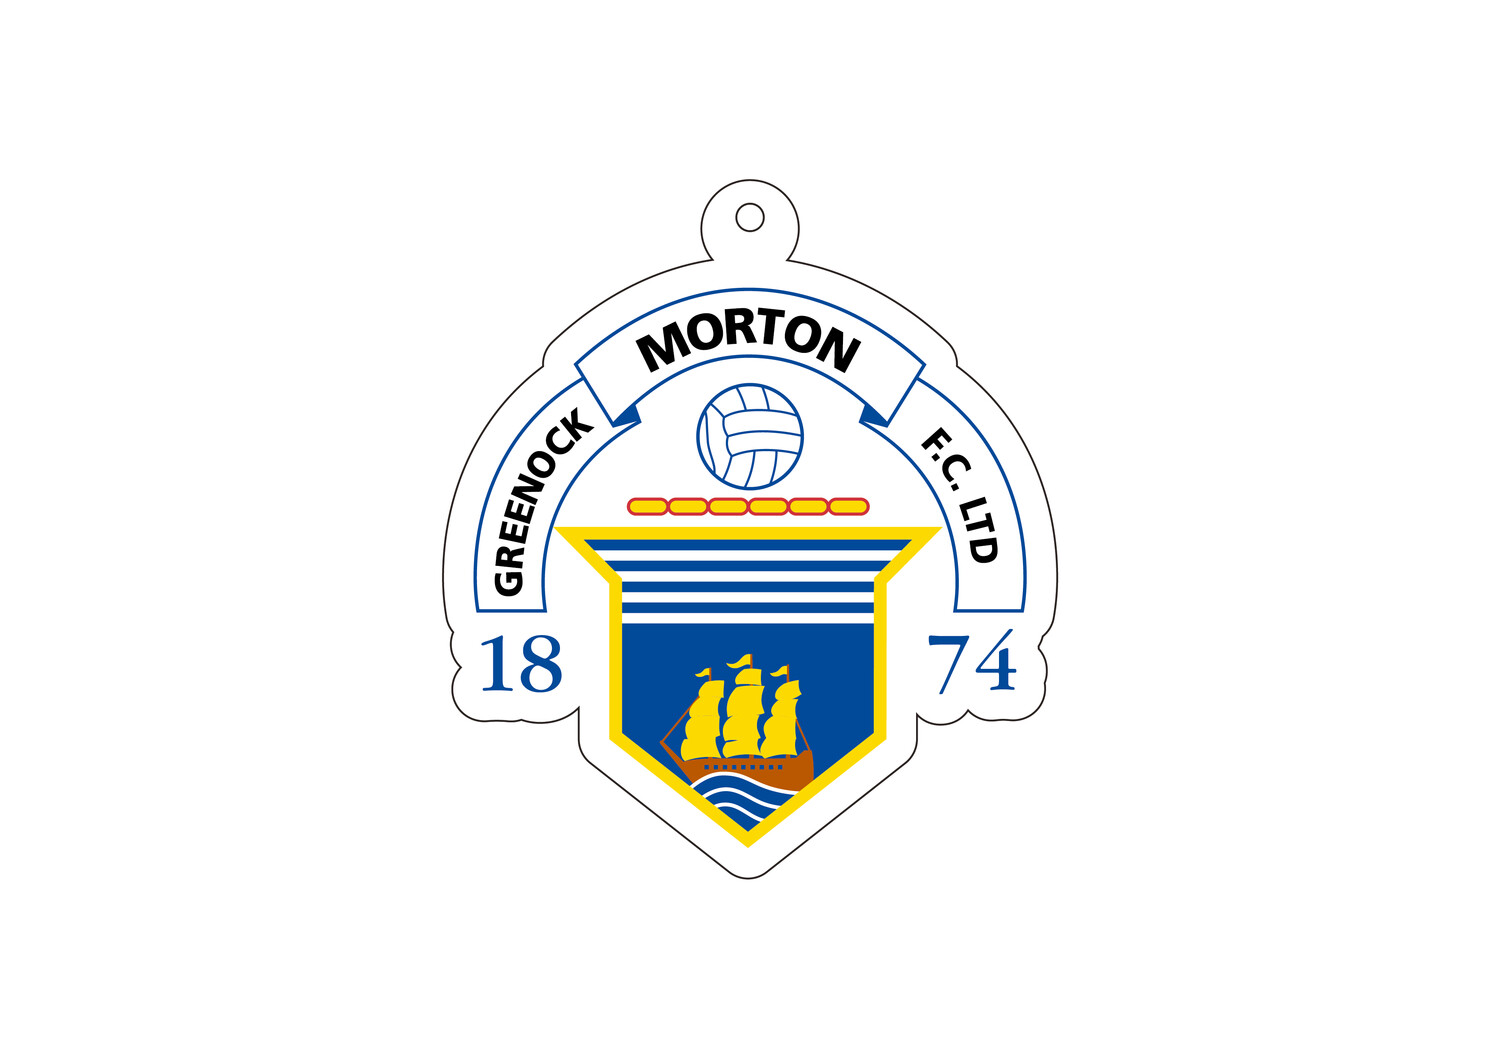 Morton Air Freshner (New Product - On Sale soon)